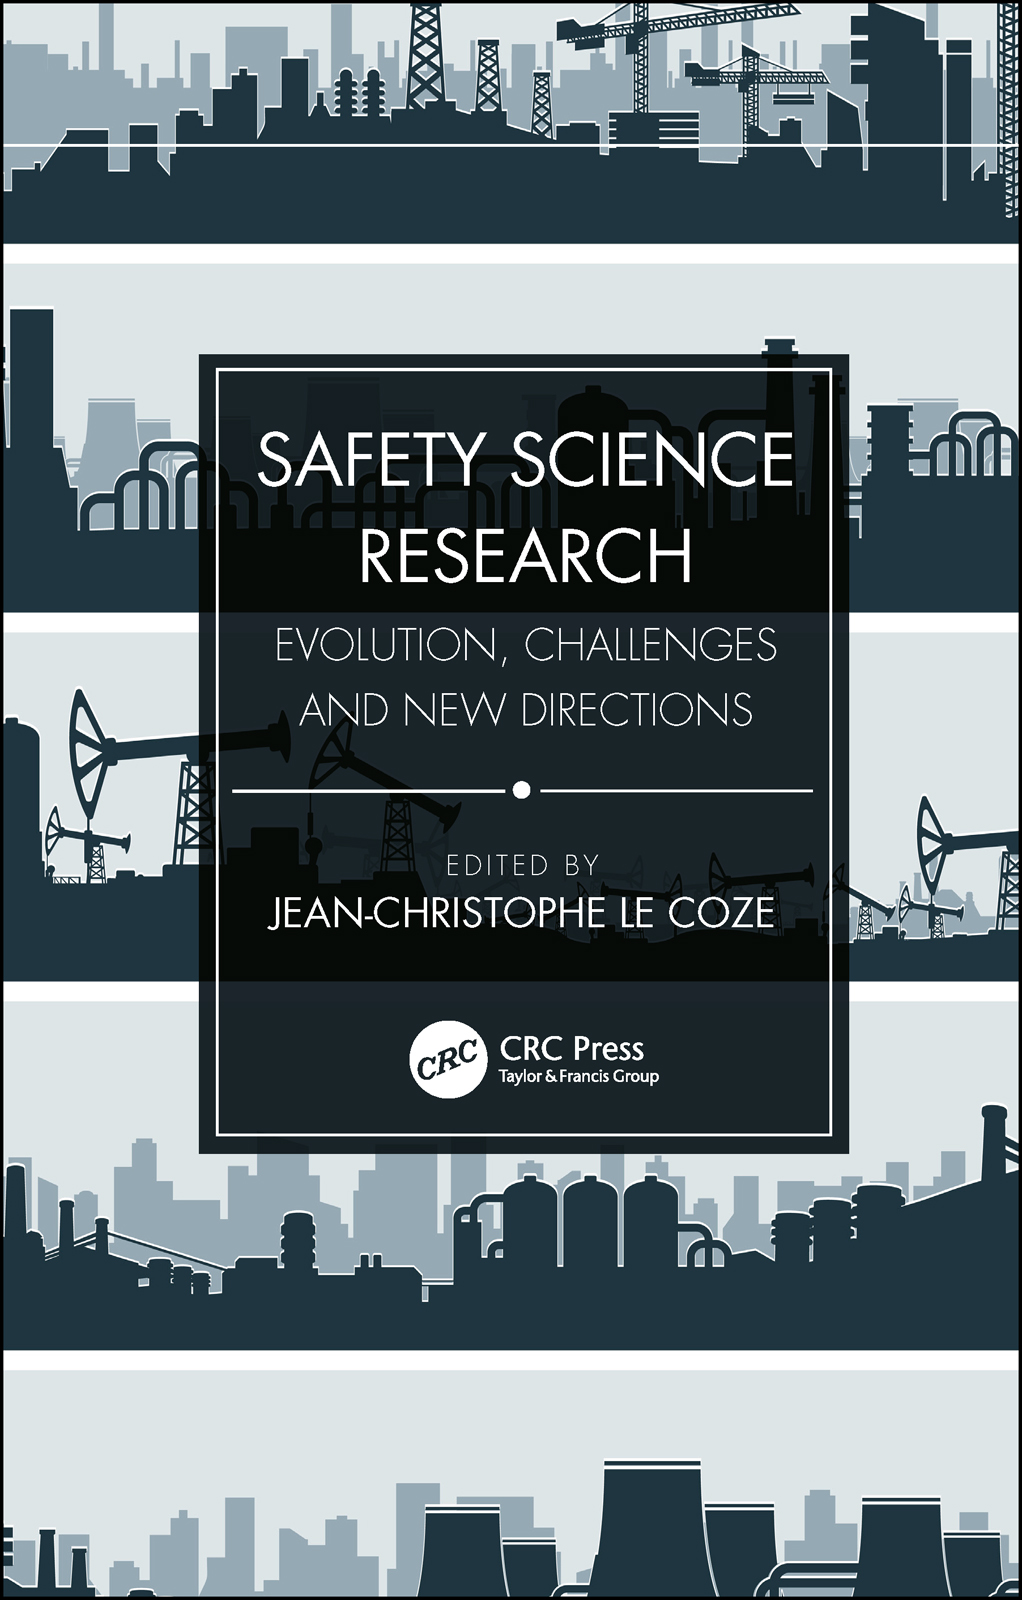 Safety Science Research: Evolution, Challenges and New Directions book cover